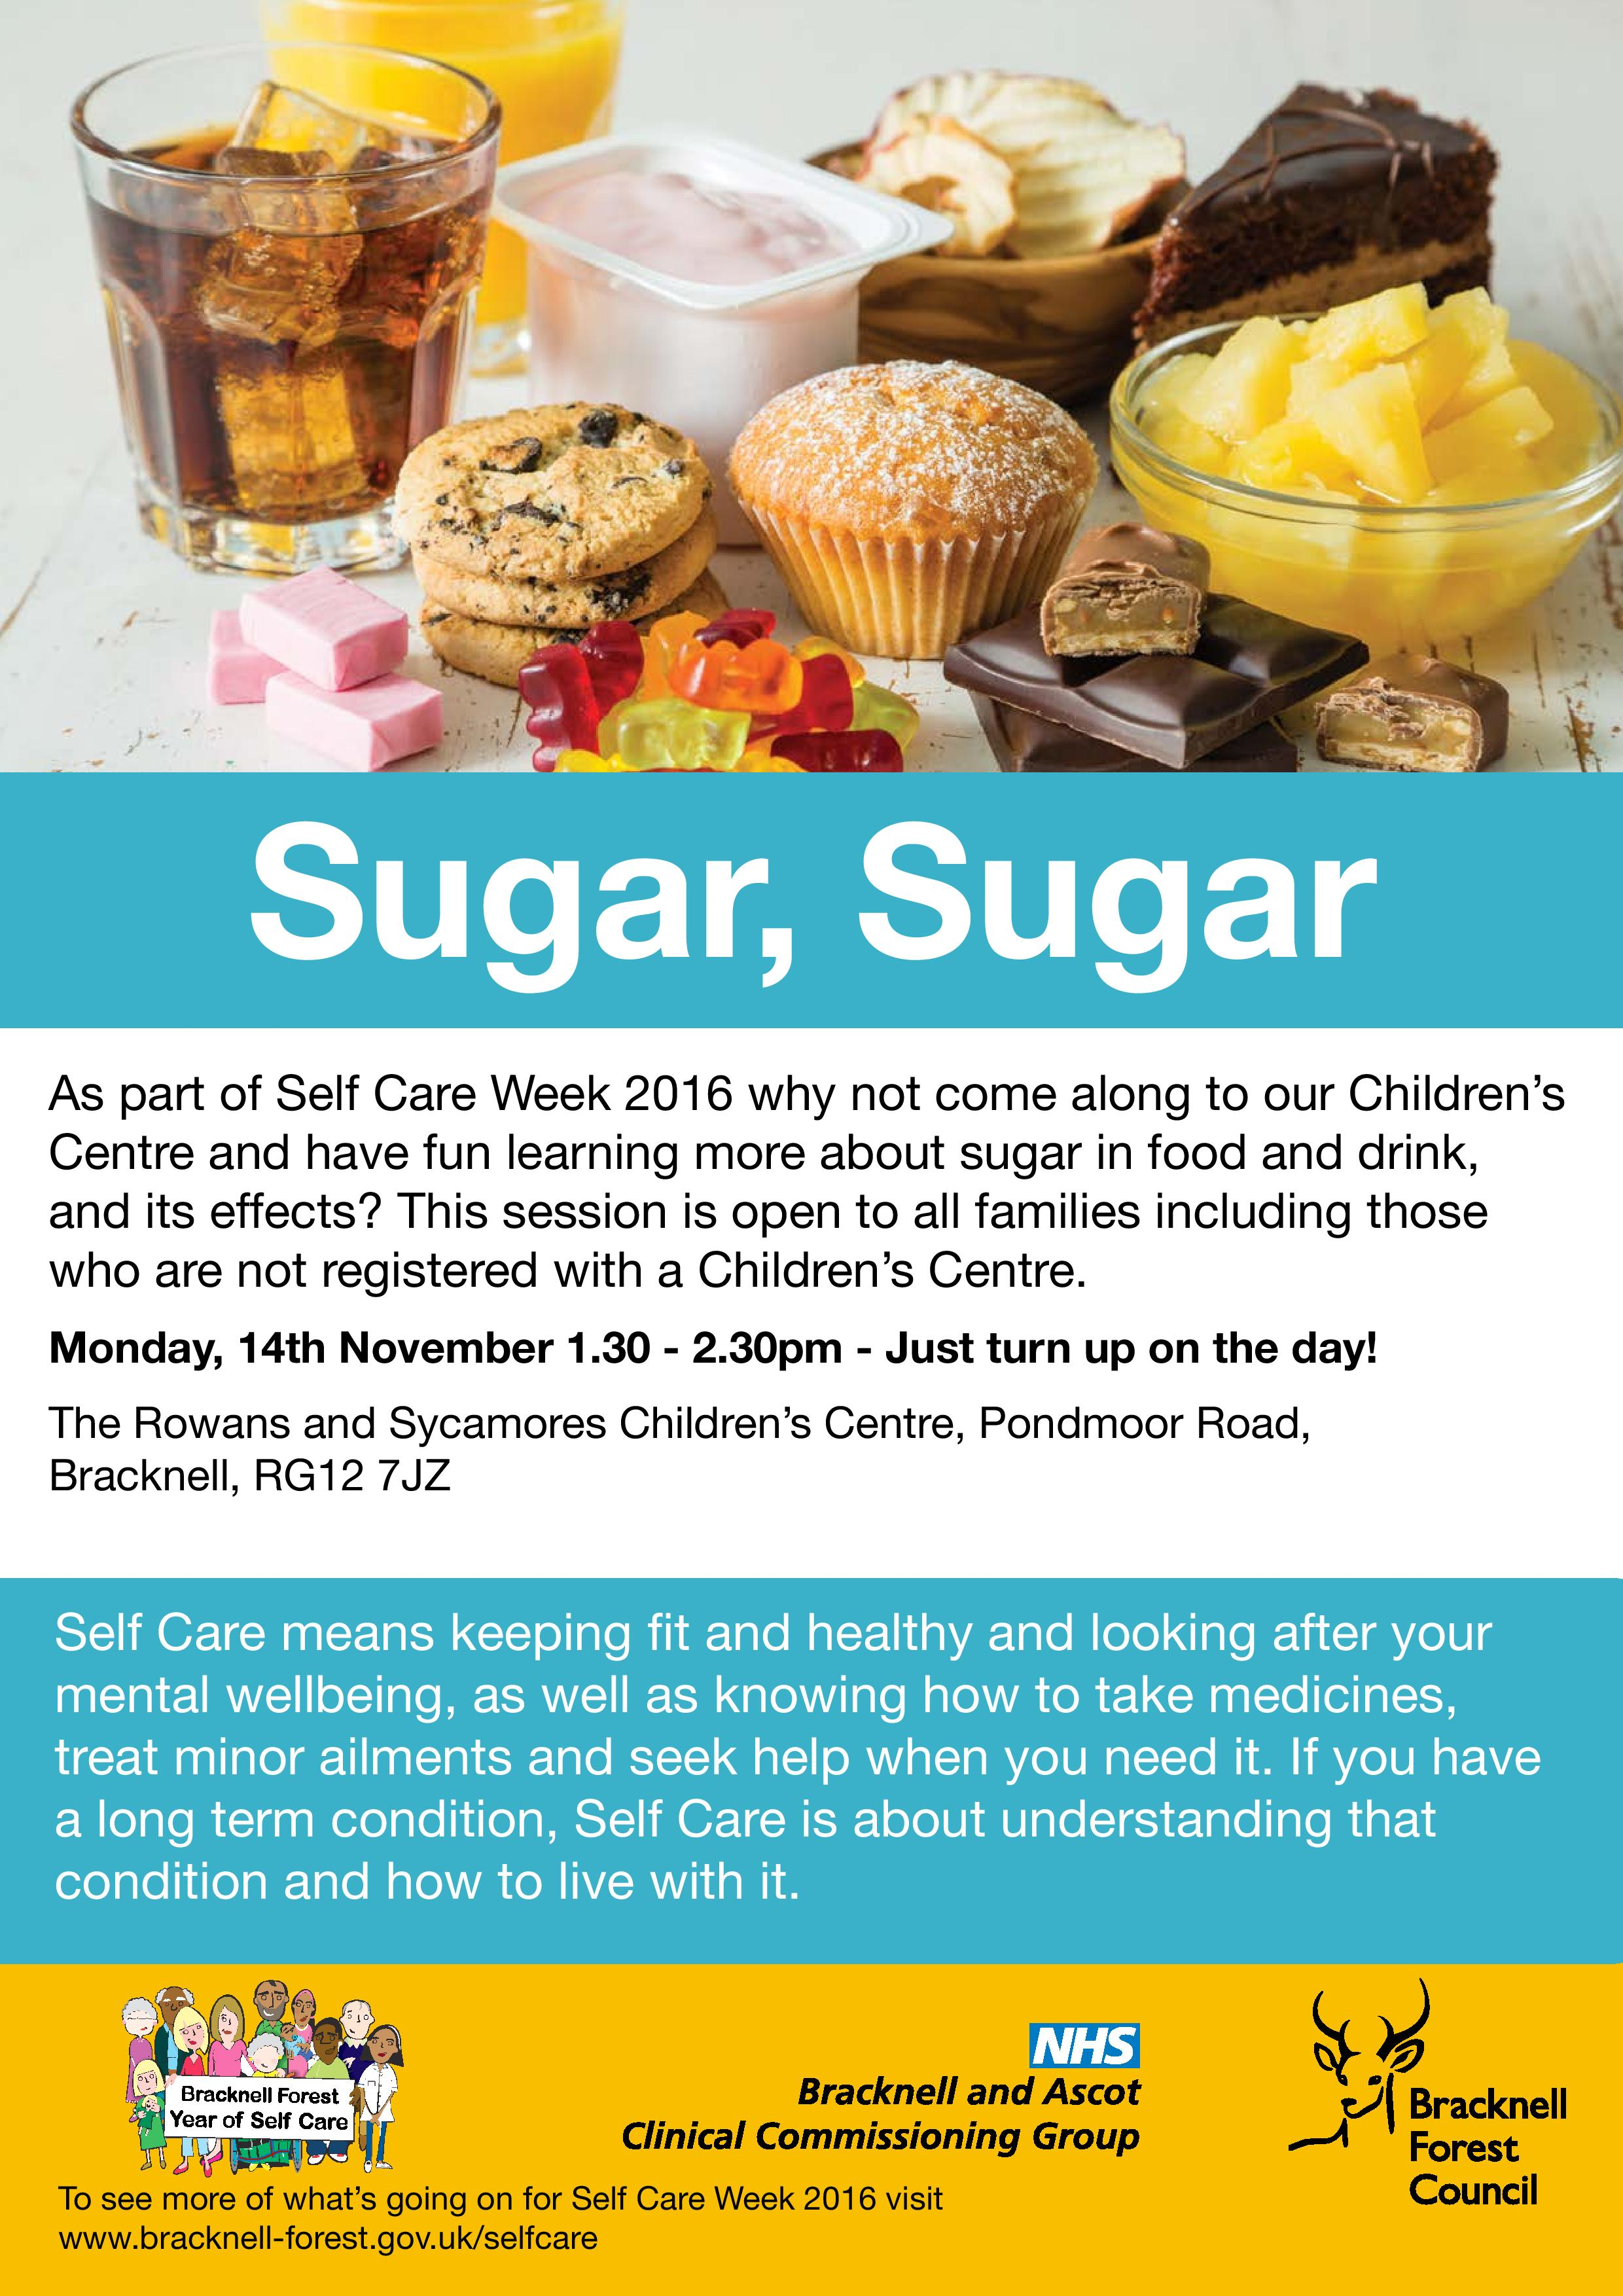 scw-cc-poster-1-sugar-page-001-1 - East Berkshire Primary Care